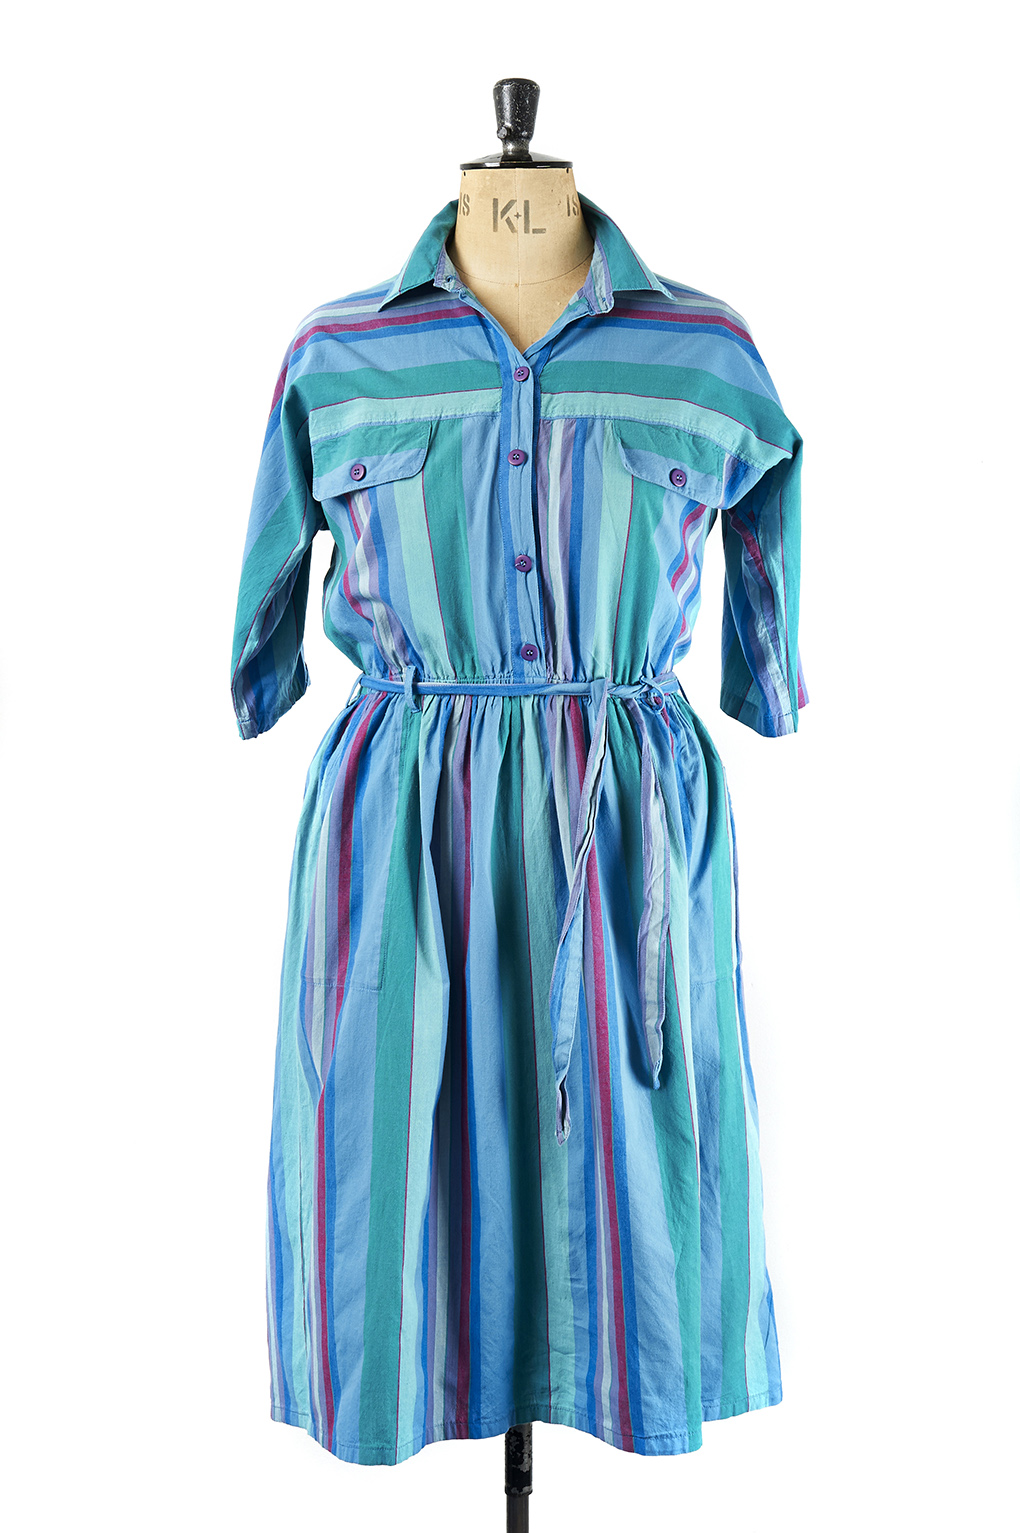 Vintage Shirt Dress, Striped - Size16